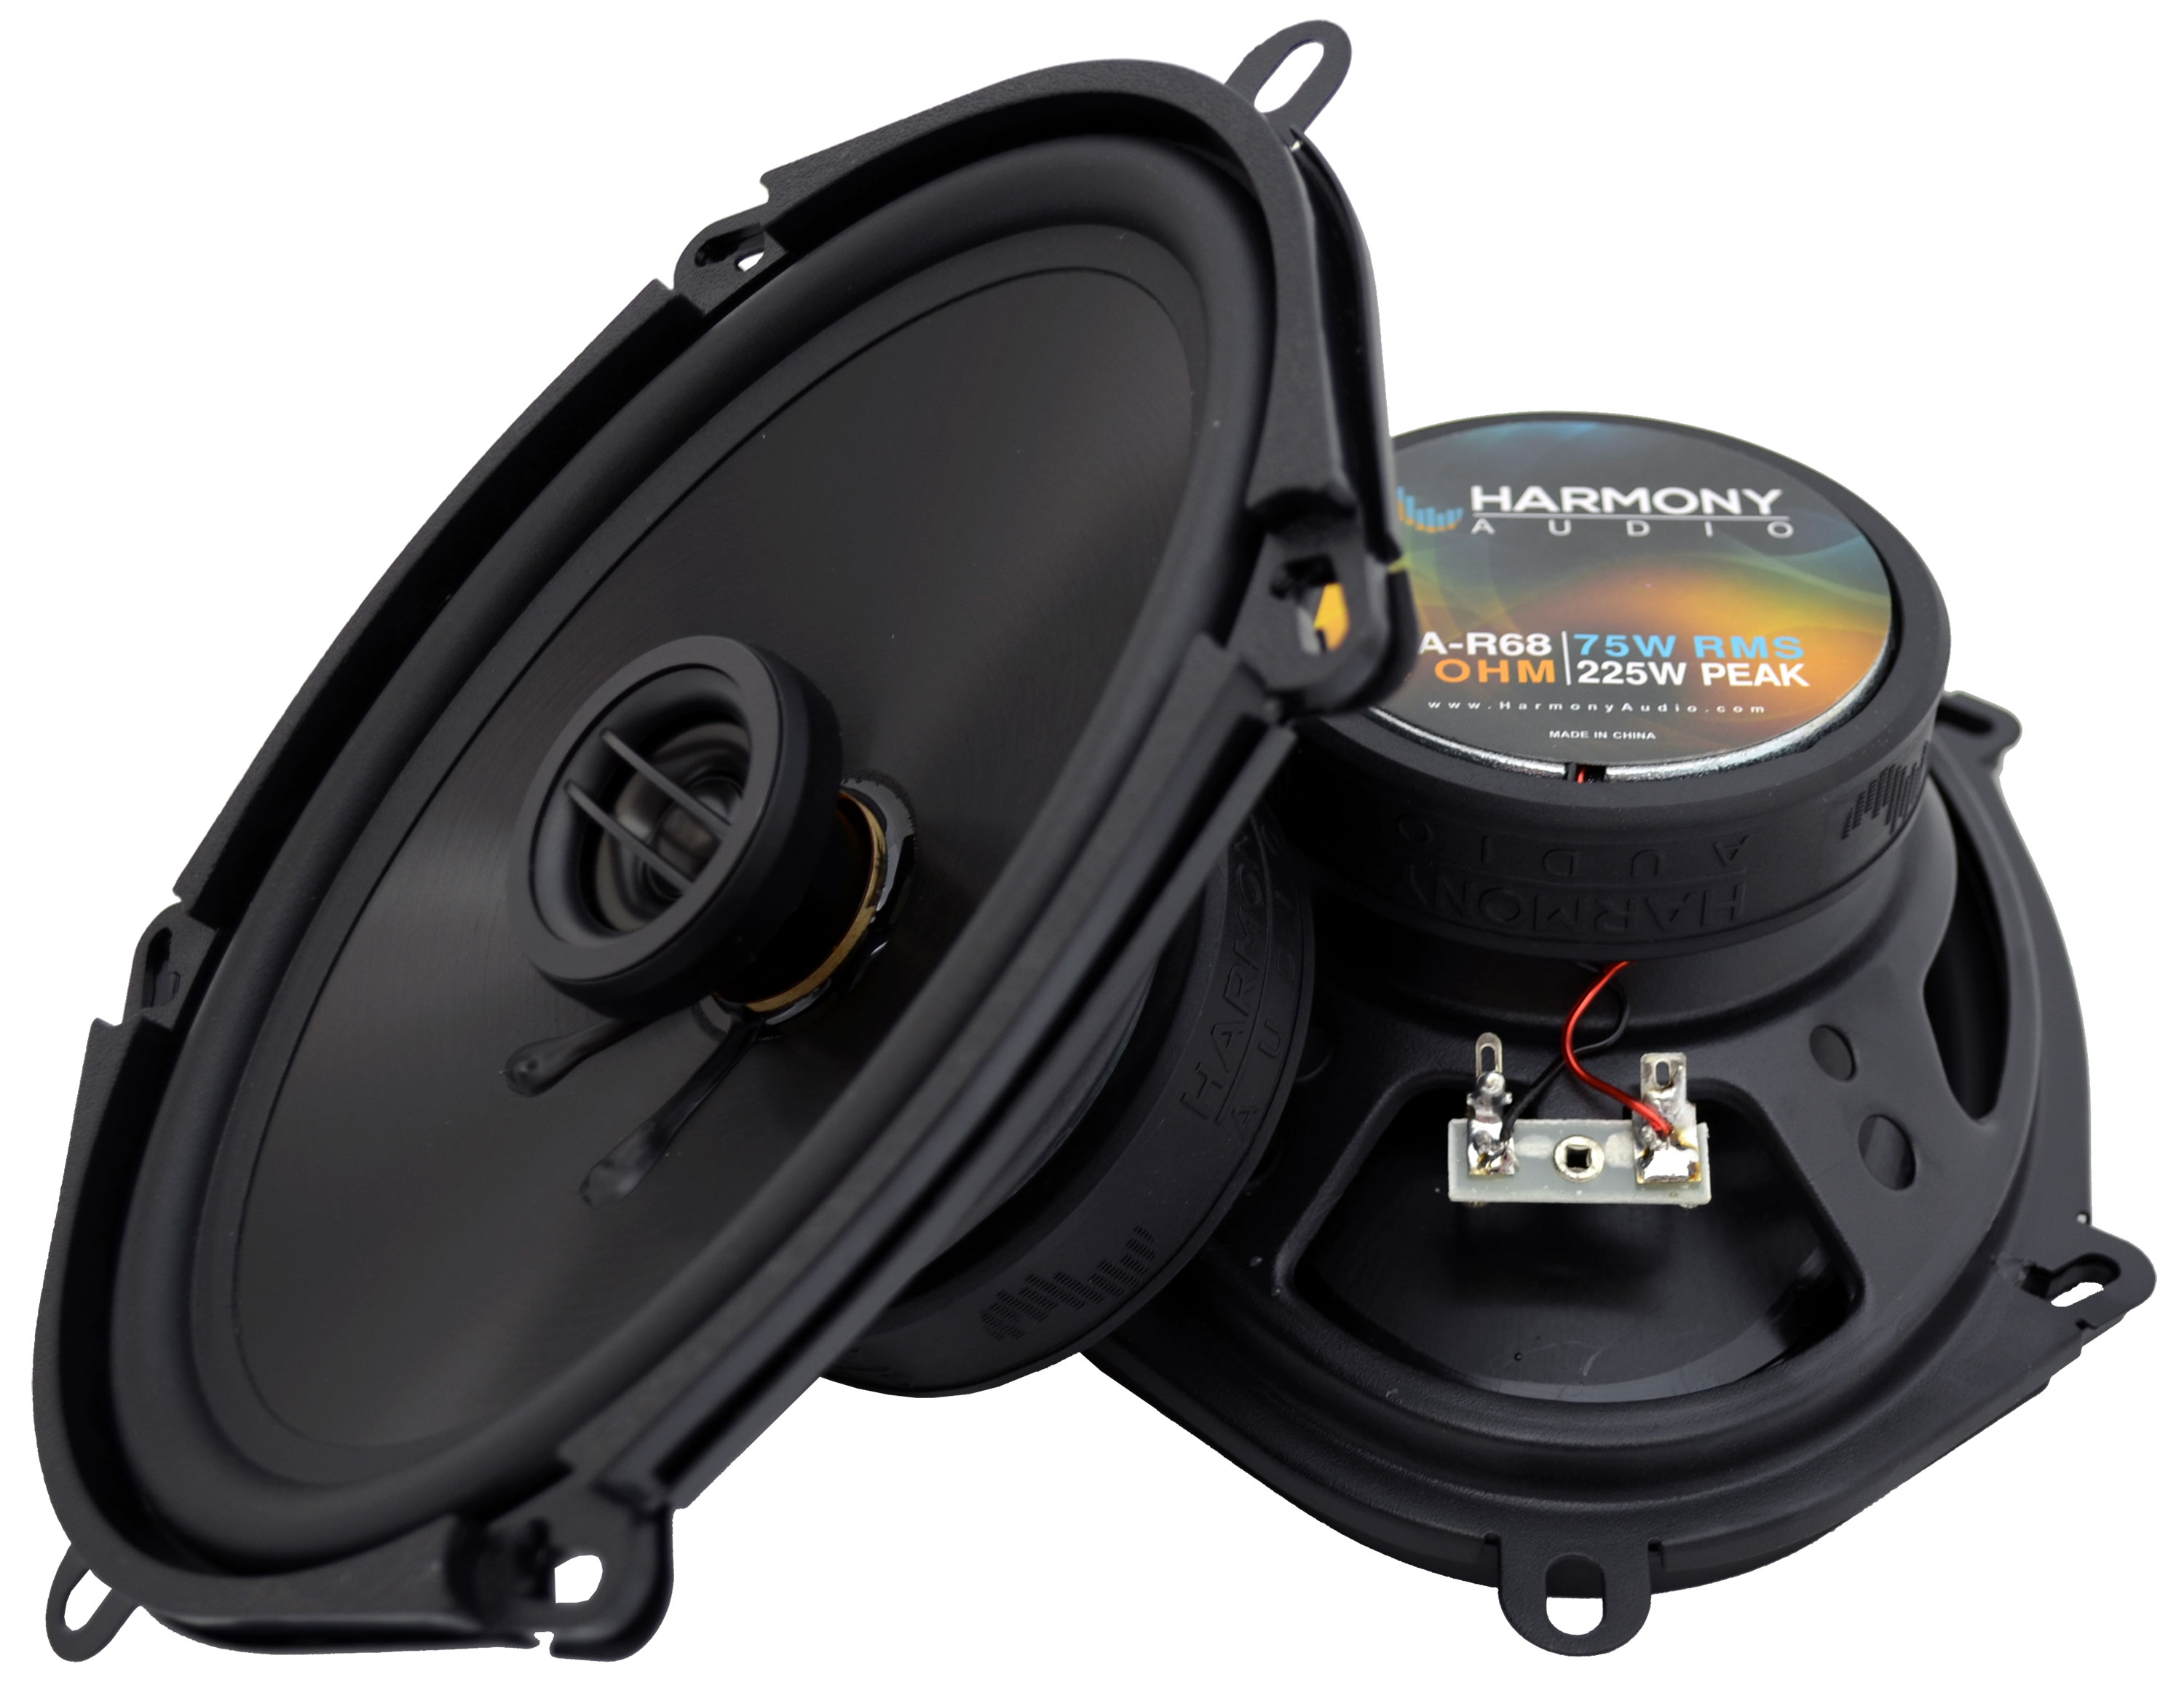 Fits Ford Five Hundred 2005-2007 Front Door Replacement Harmony HA-R68 Speakers